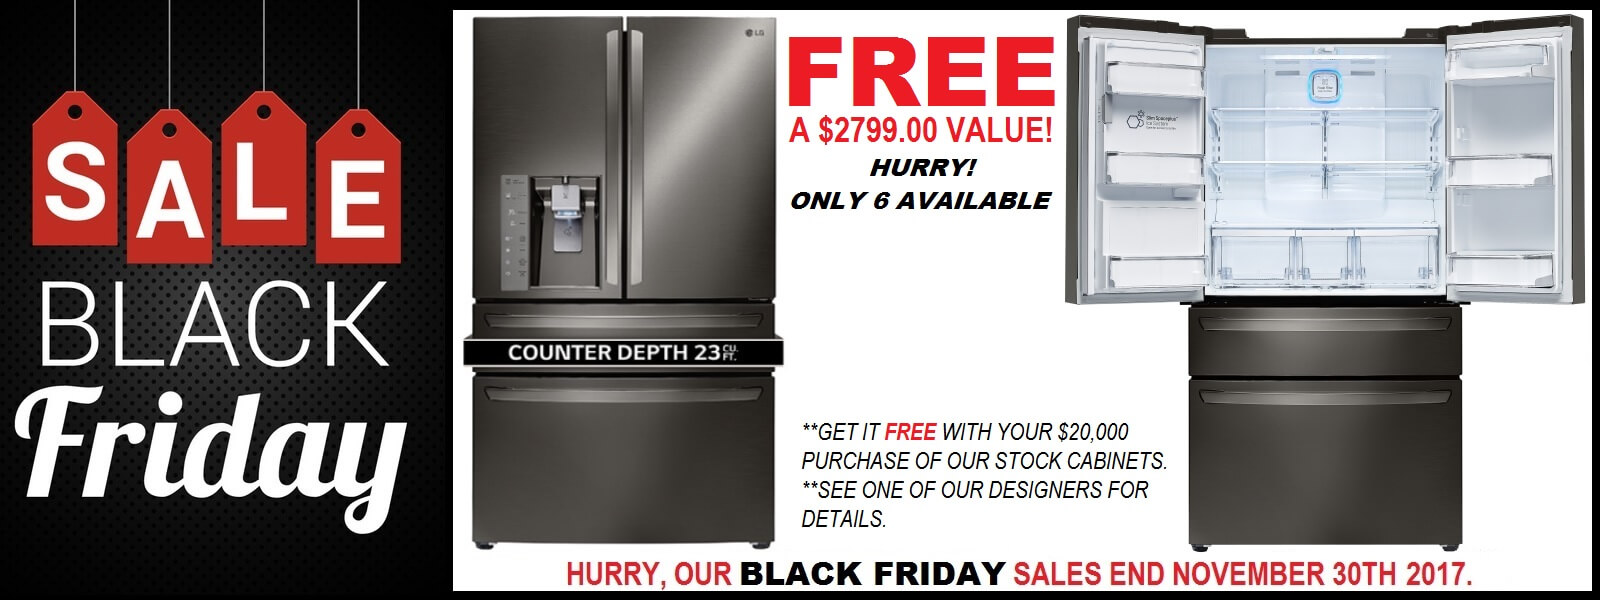 Black Friday Sale Free Refrigerator